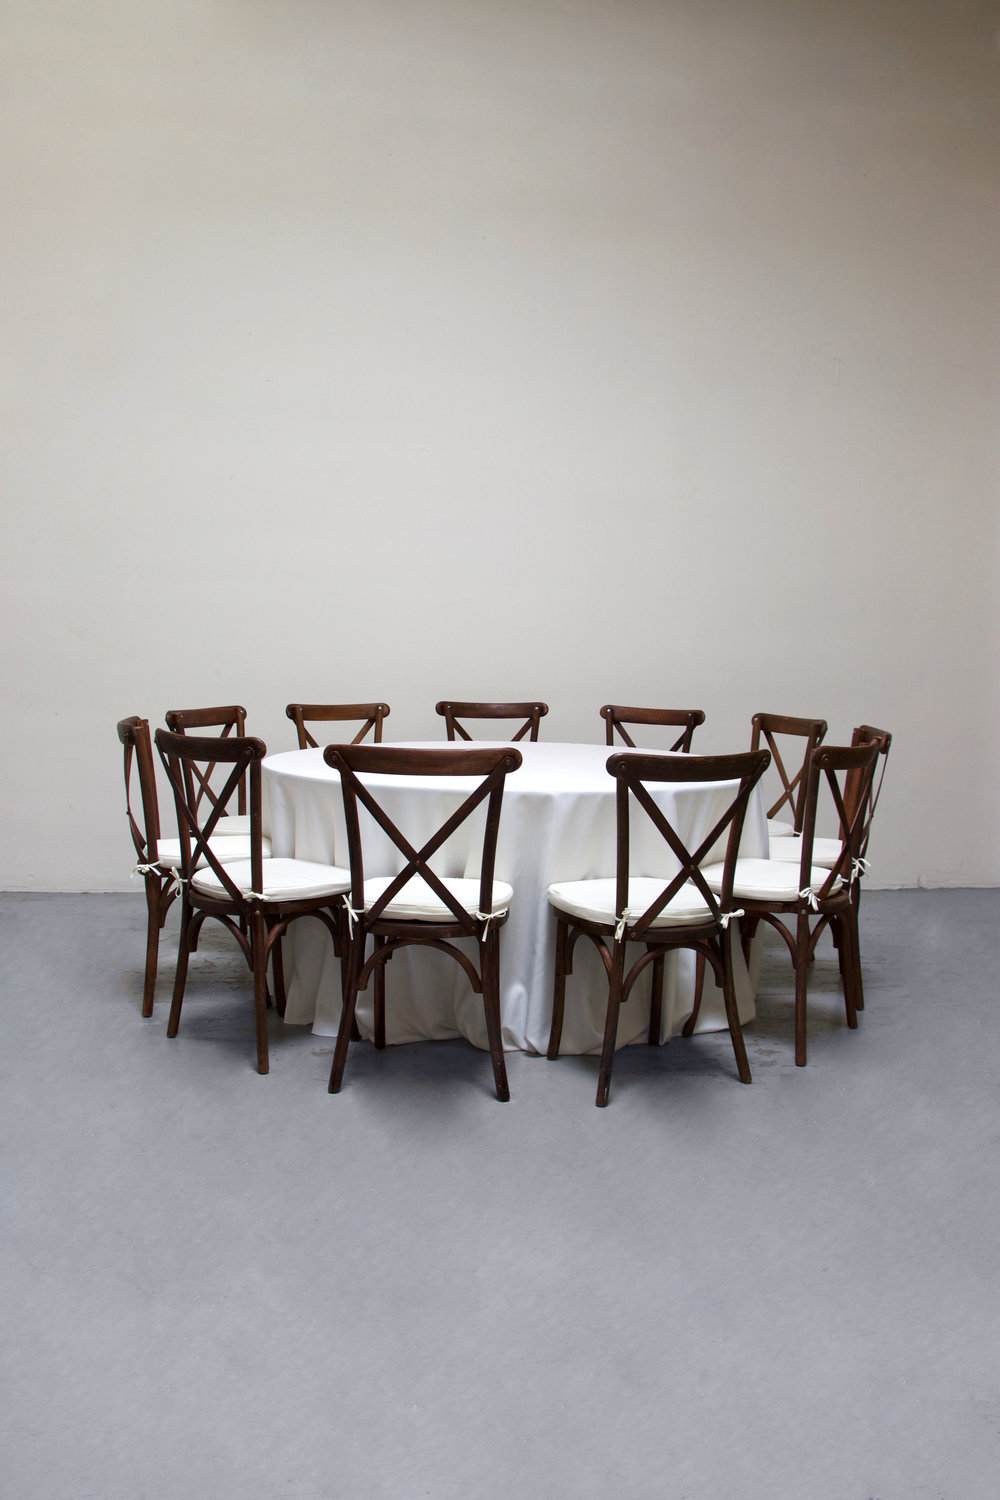 1 Round Banquet w/ 11 Cross-Back Chairs